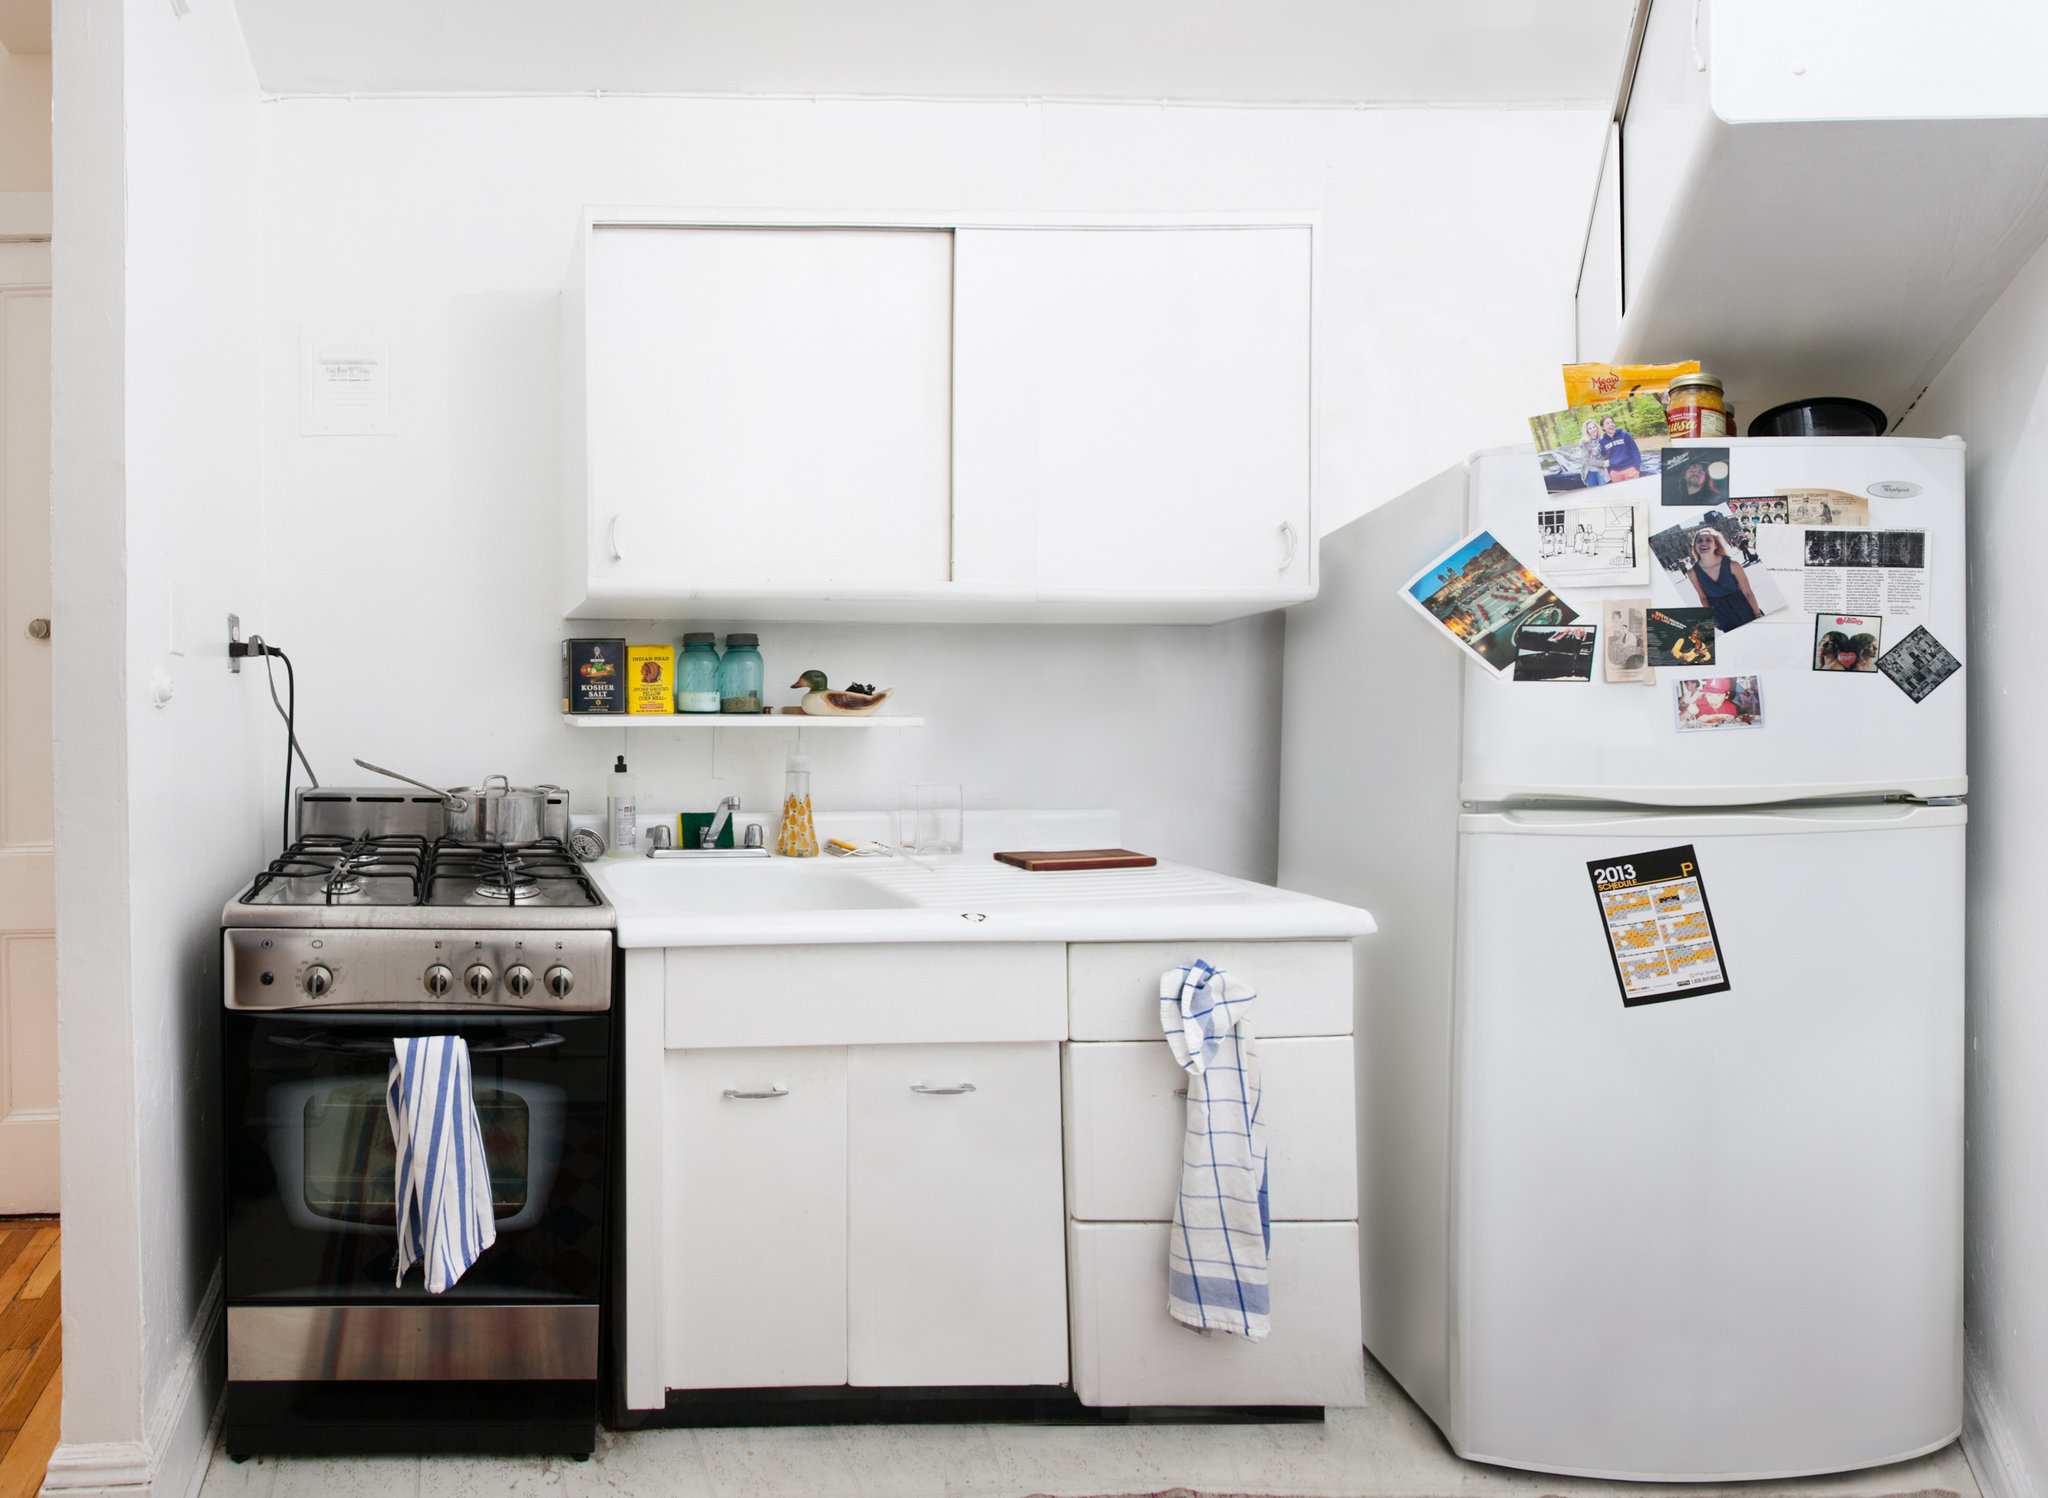 in a tiny brooklyn kitchen, room for lots of ideas - the new york times